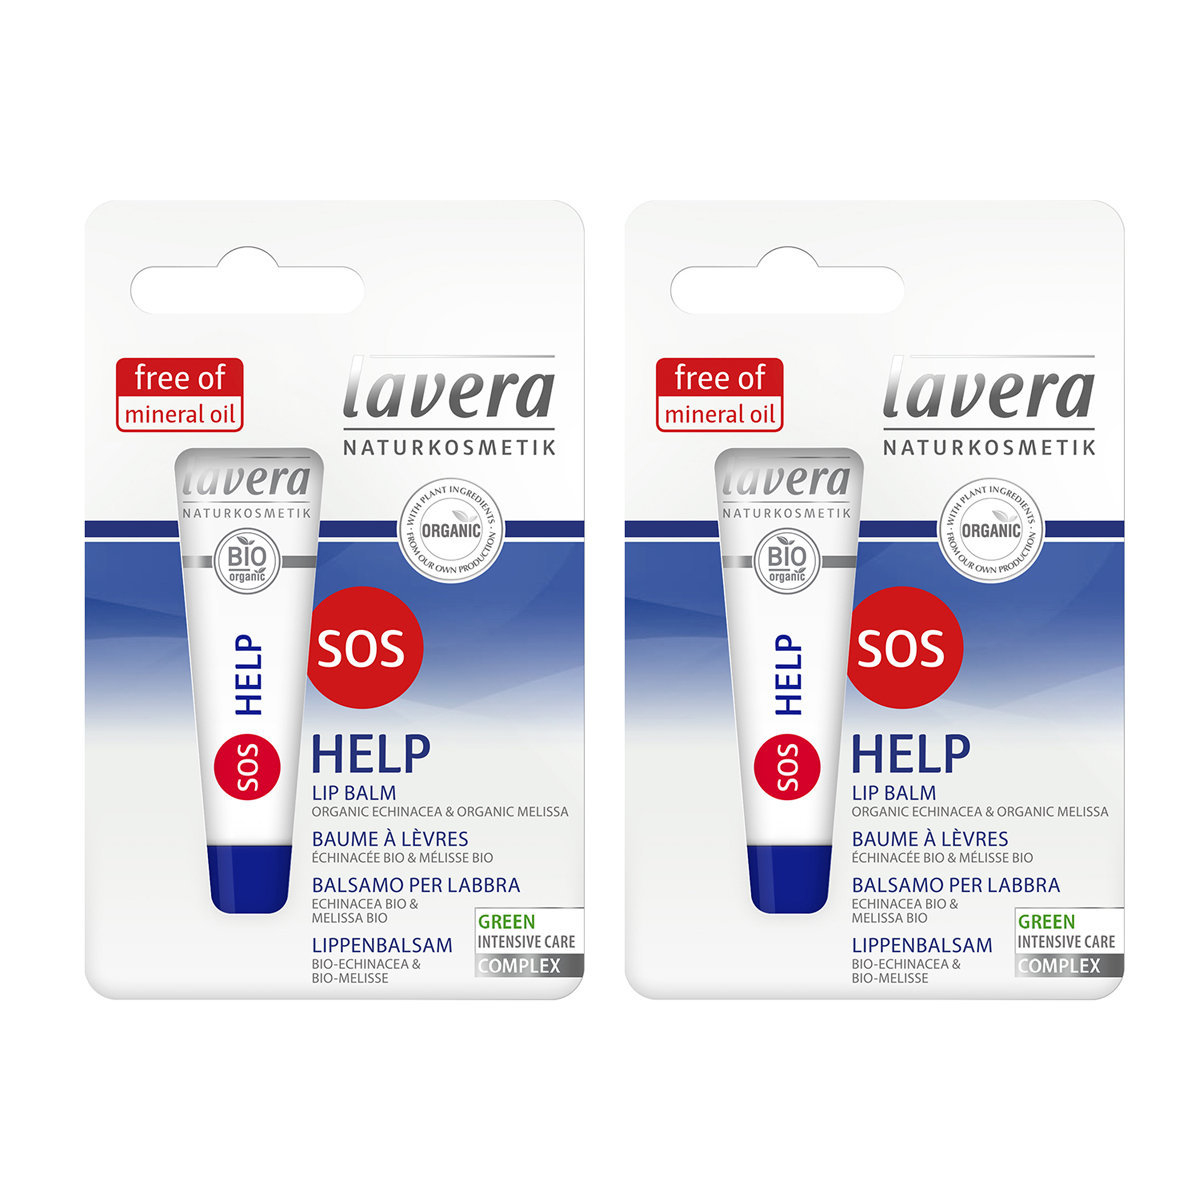 SOS Help Lip Balm (2pcs) Made in Germany (Sell-by-date: 02/2021)